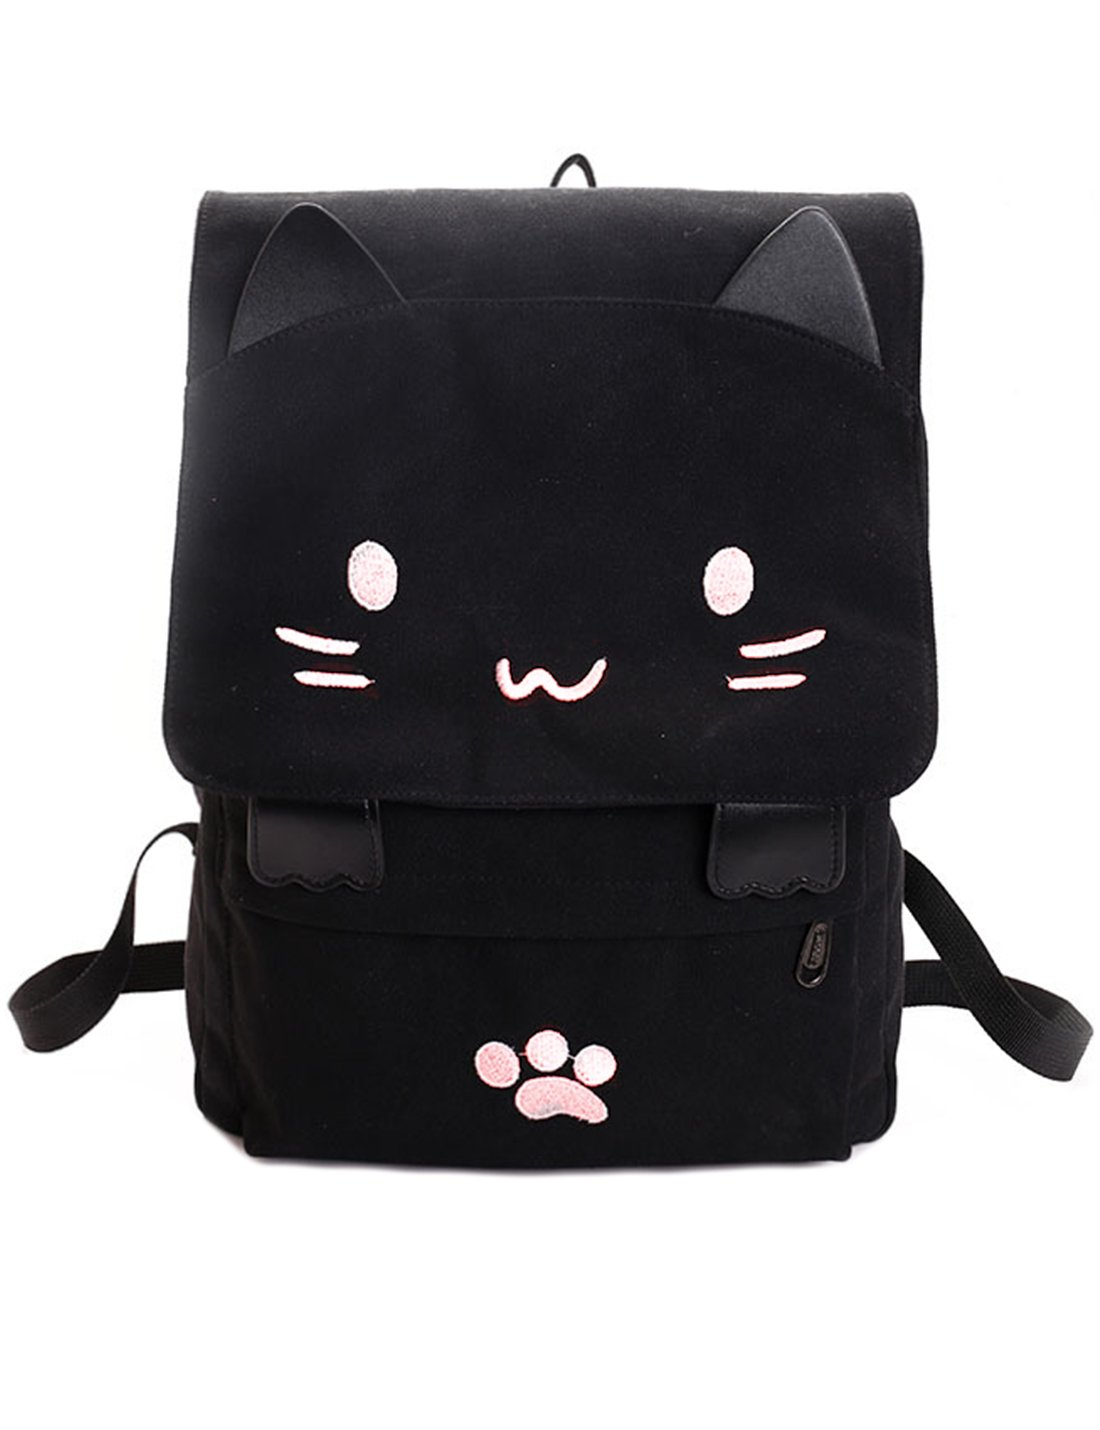 84d47a8685eb jjai Black College Cute cat Embroidery Canvas School Laptop Backpack Bags  for Women Kids Plus Size Japanese Cartoon Kitty paw Schoolbag ruchsack  Girls Boys ...